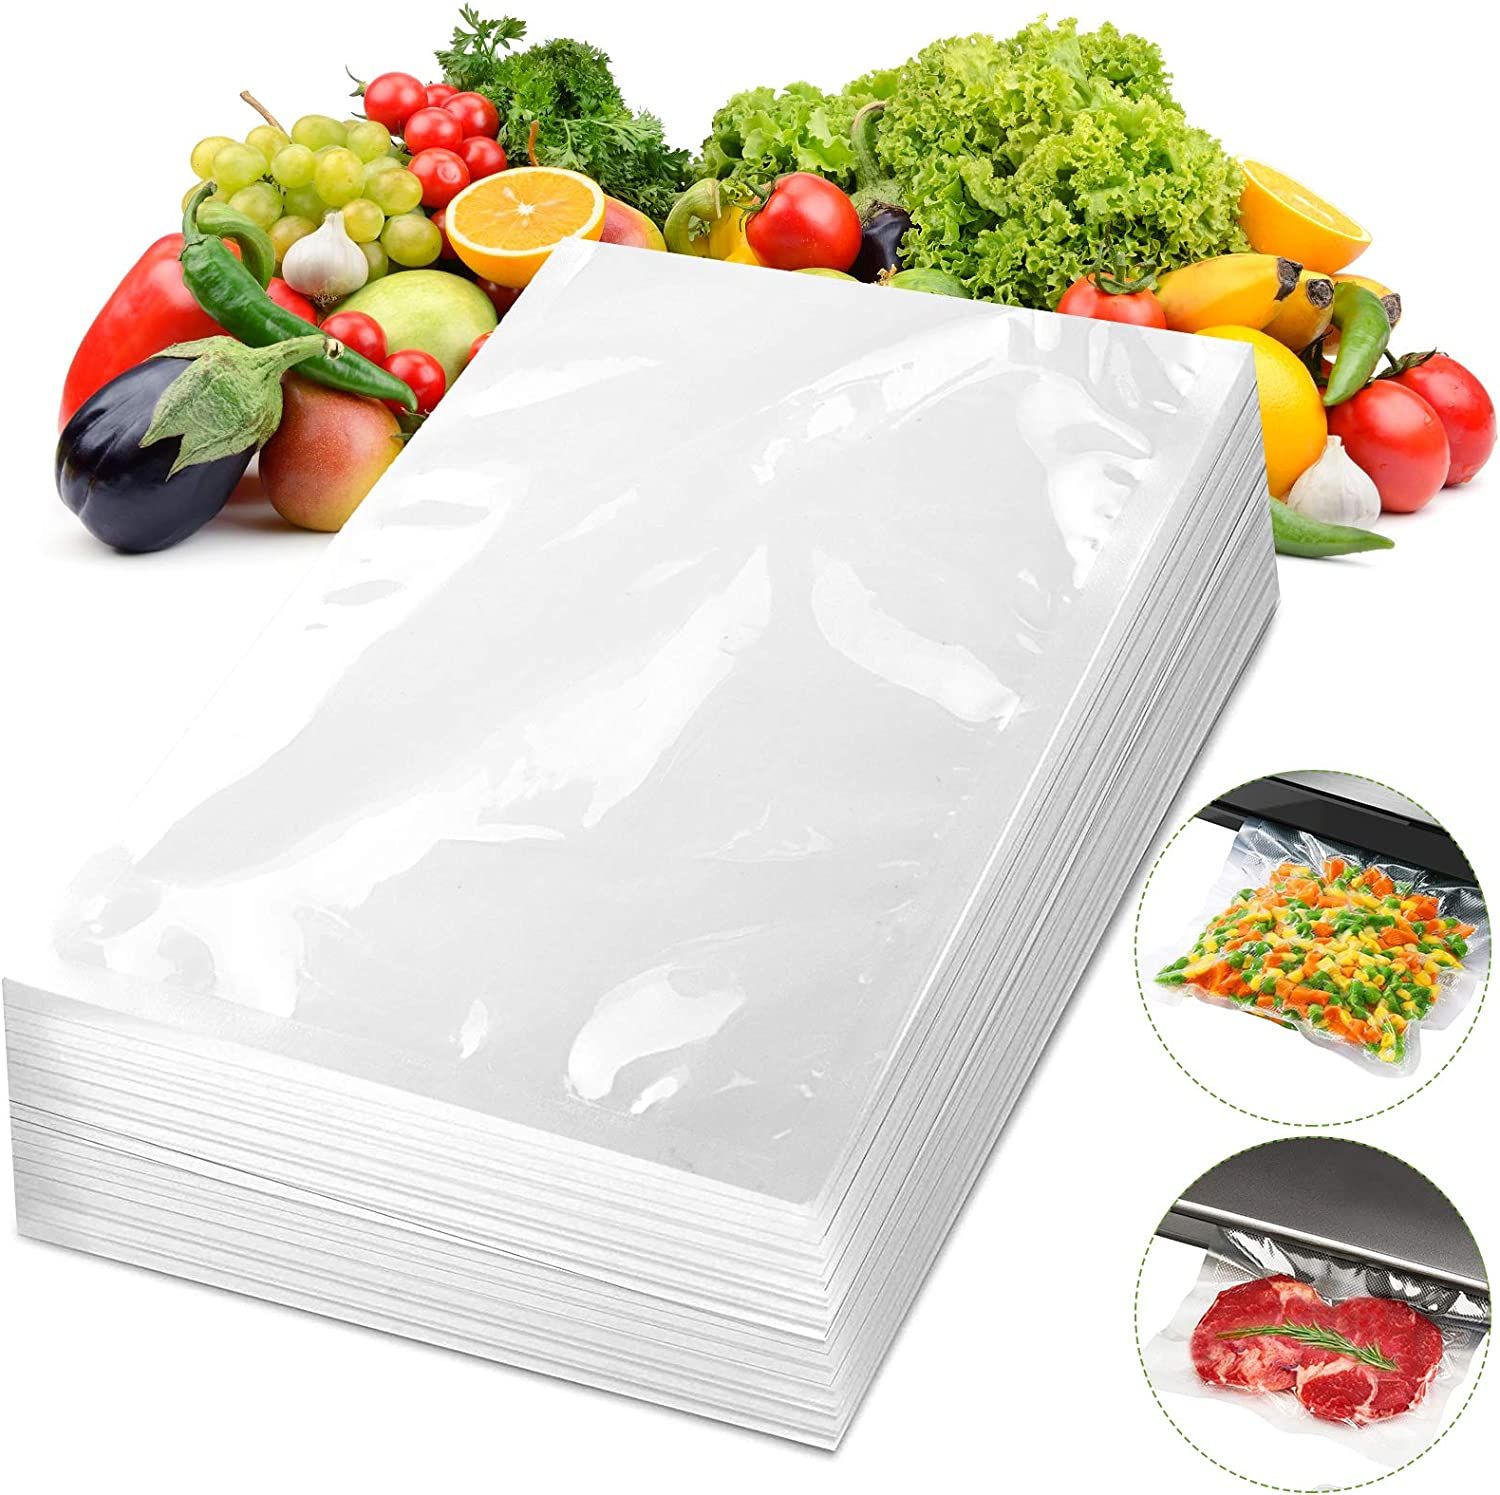 Vacuum Sealer Bags Upgrade 100 Counts Machines Embossed PreCut Sealer Bag for Seal a Meal Heat Seal Food VAC Storage Saver Heavy Duty BPA Safe Commercial Grade Sous Vide, Universal Size Pint 8''x 12''